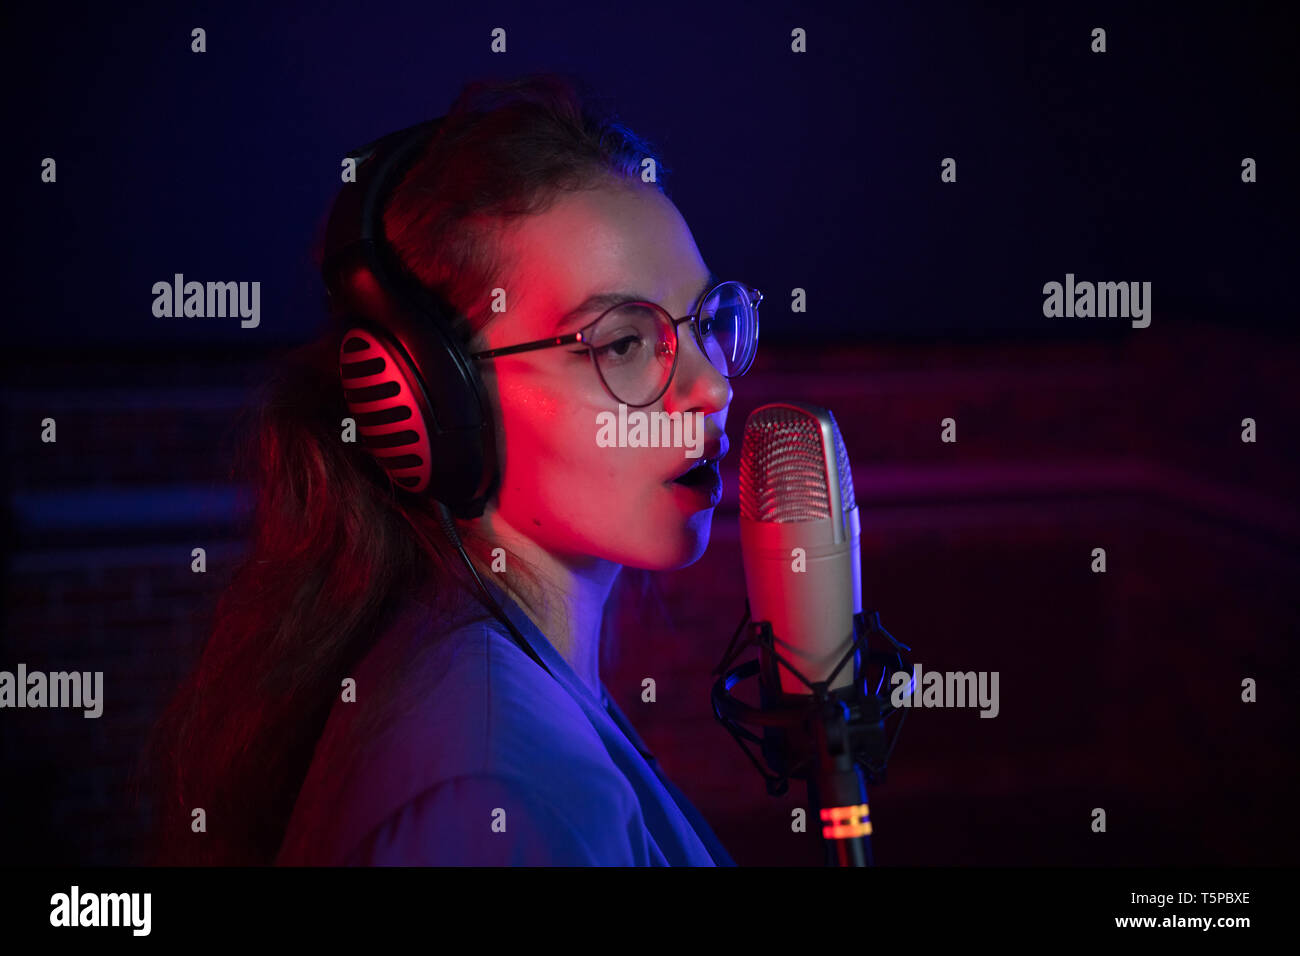 A young woman in glasses singing by the microphone in neon lighting Stock Photo